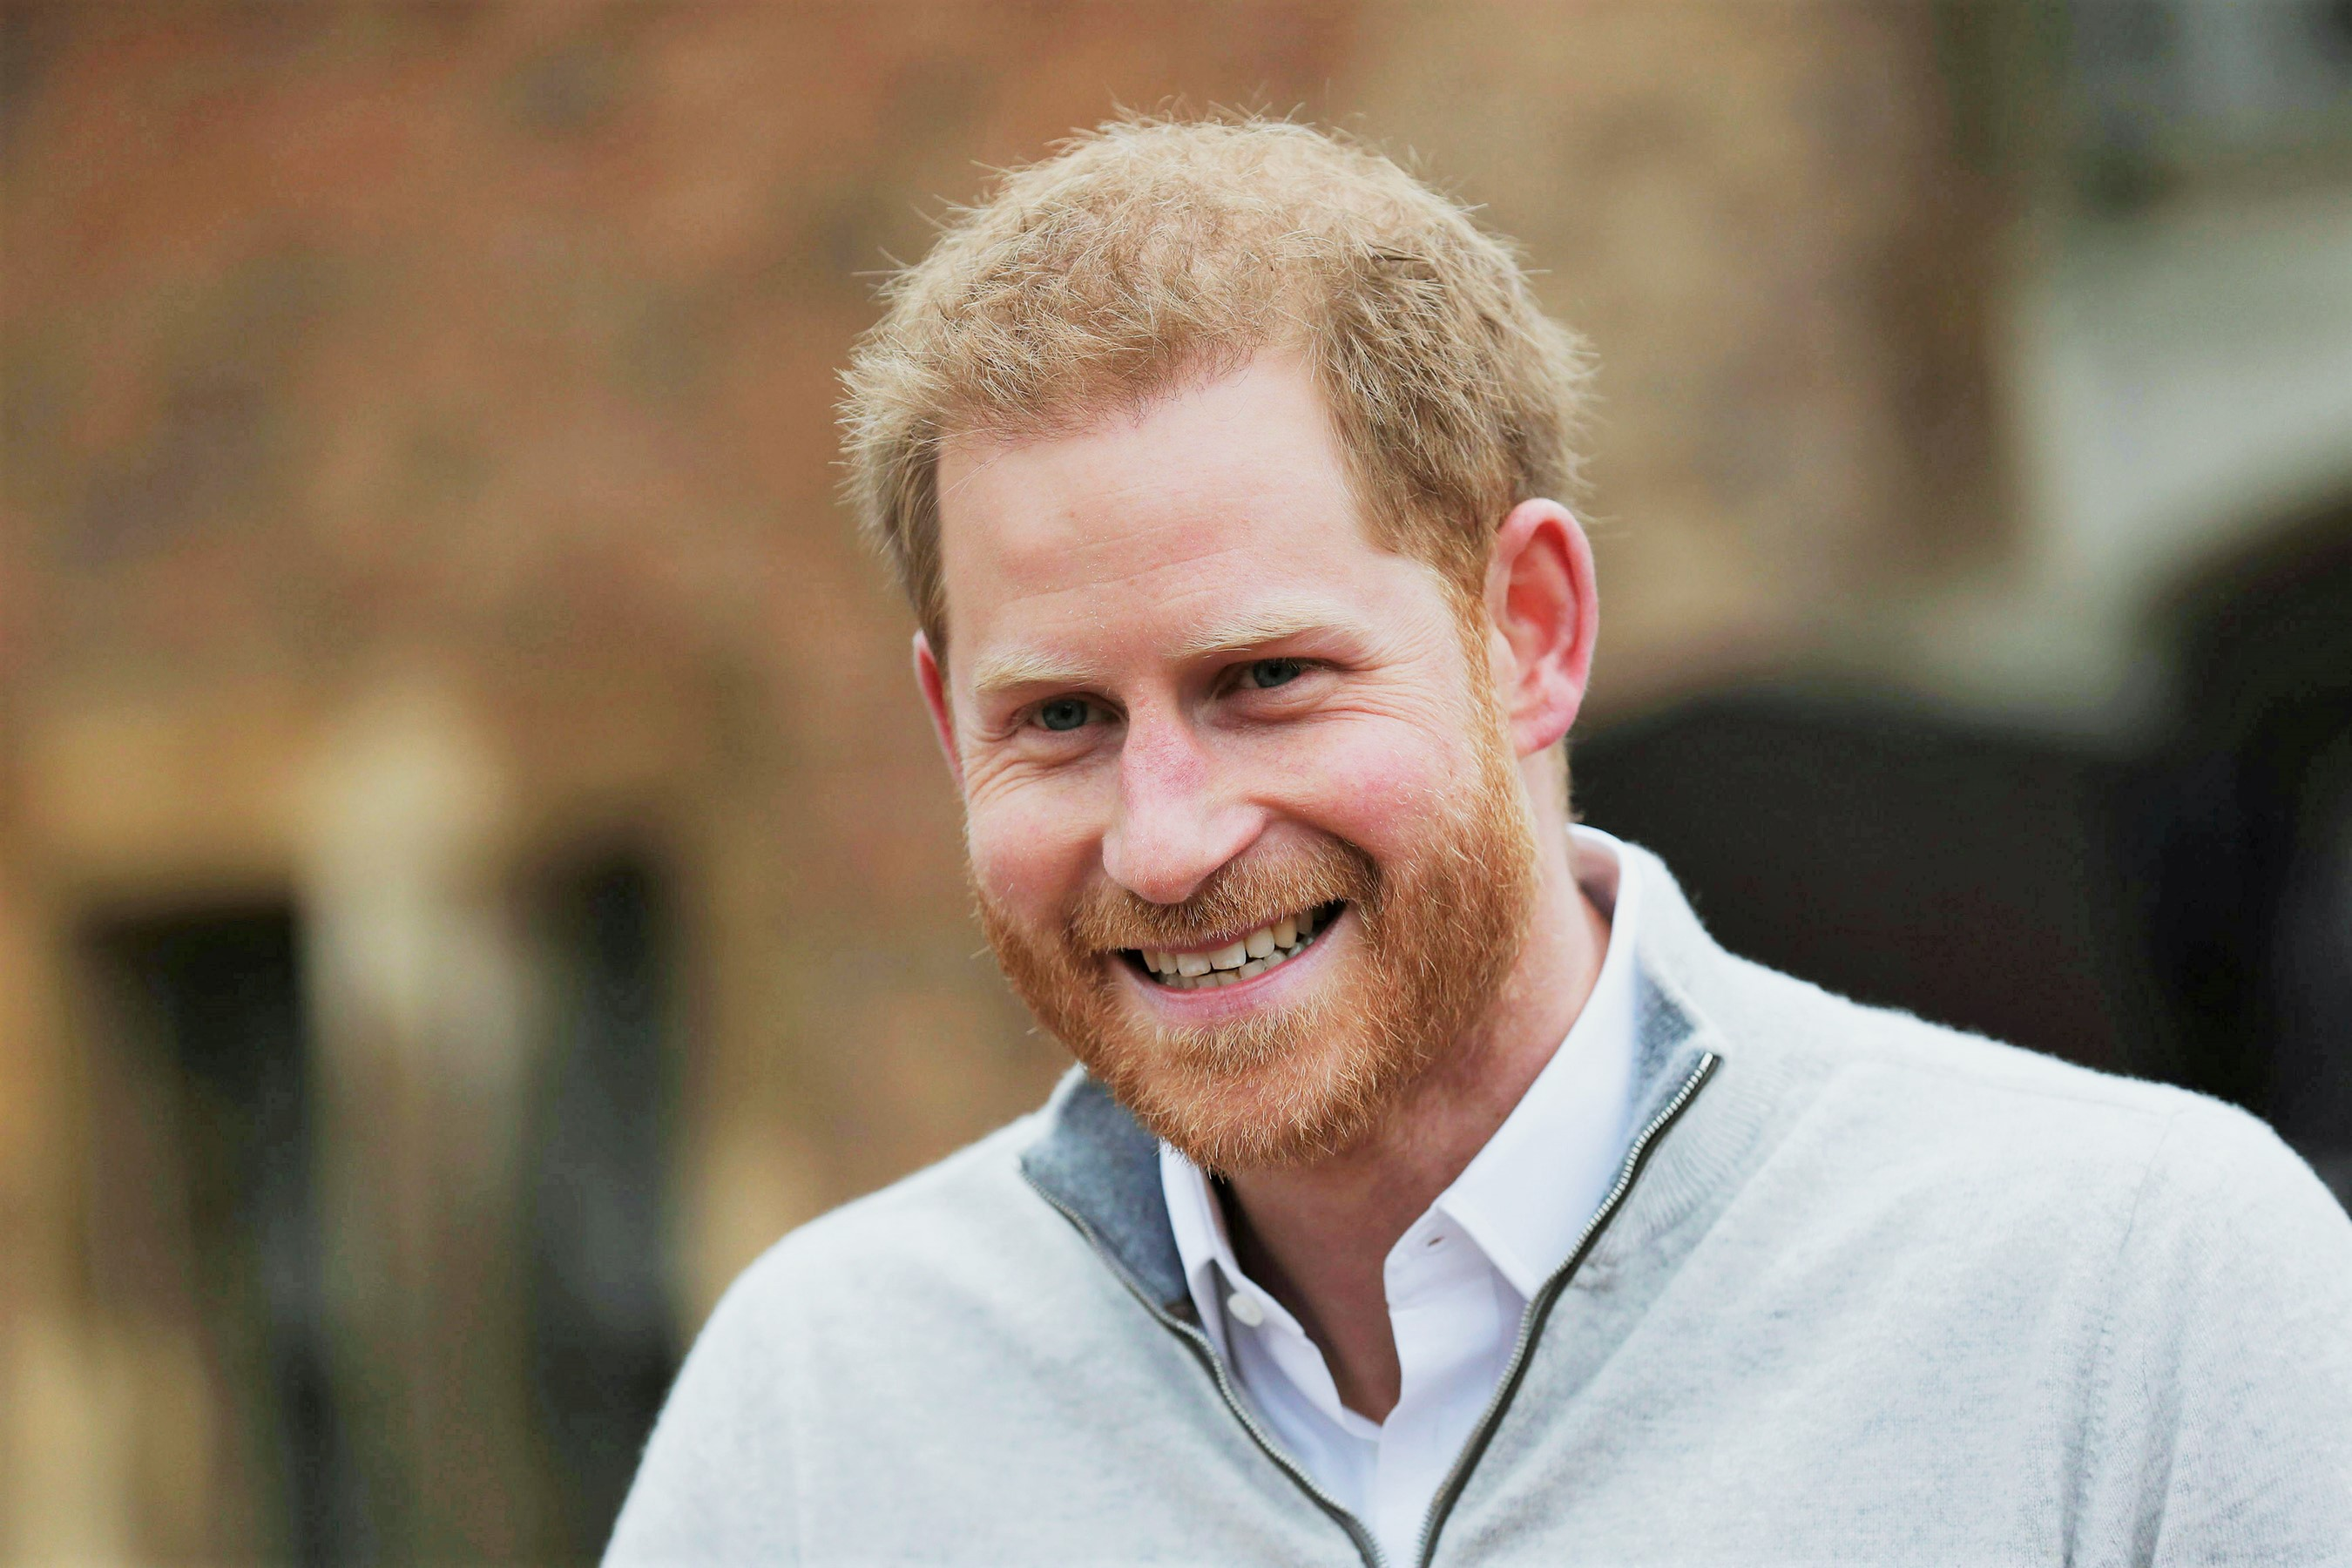 Prince Harry Gushes That Meghan Markle's Delivery of Baby Boy Is 'Beyond Comprehension'